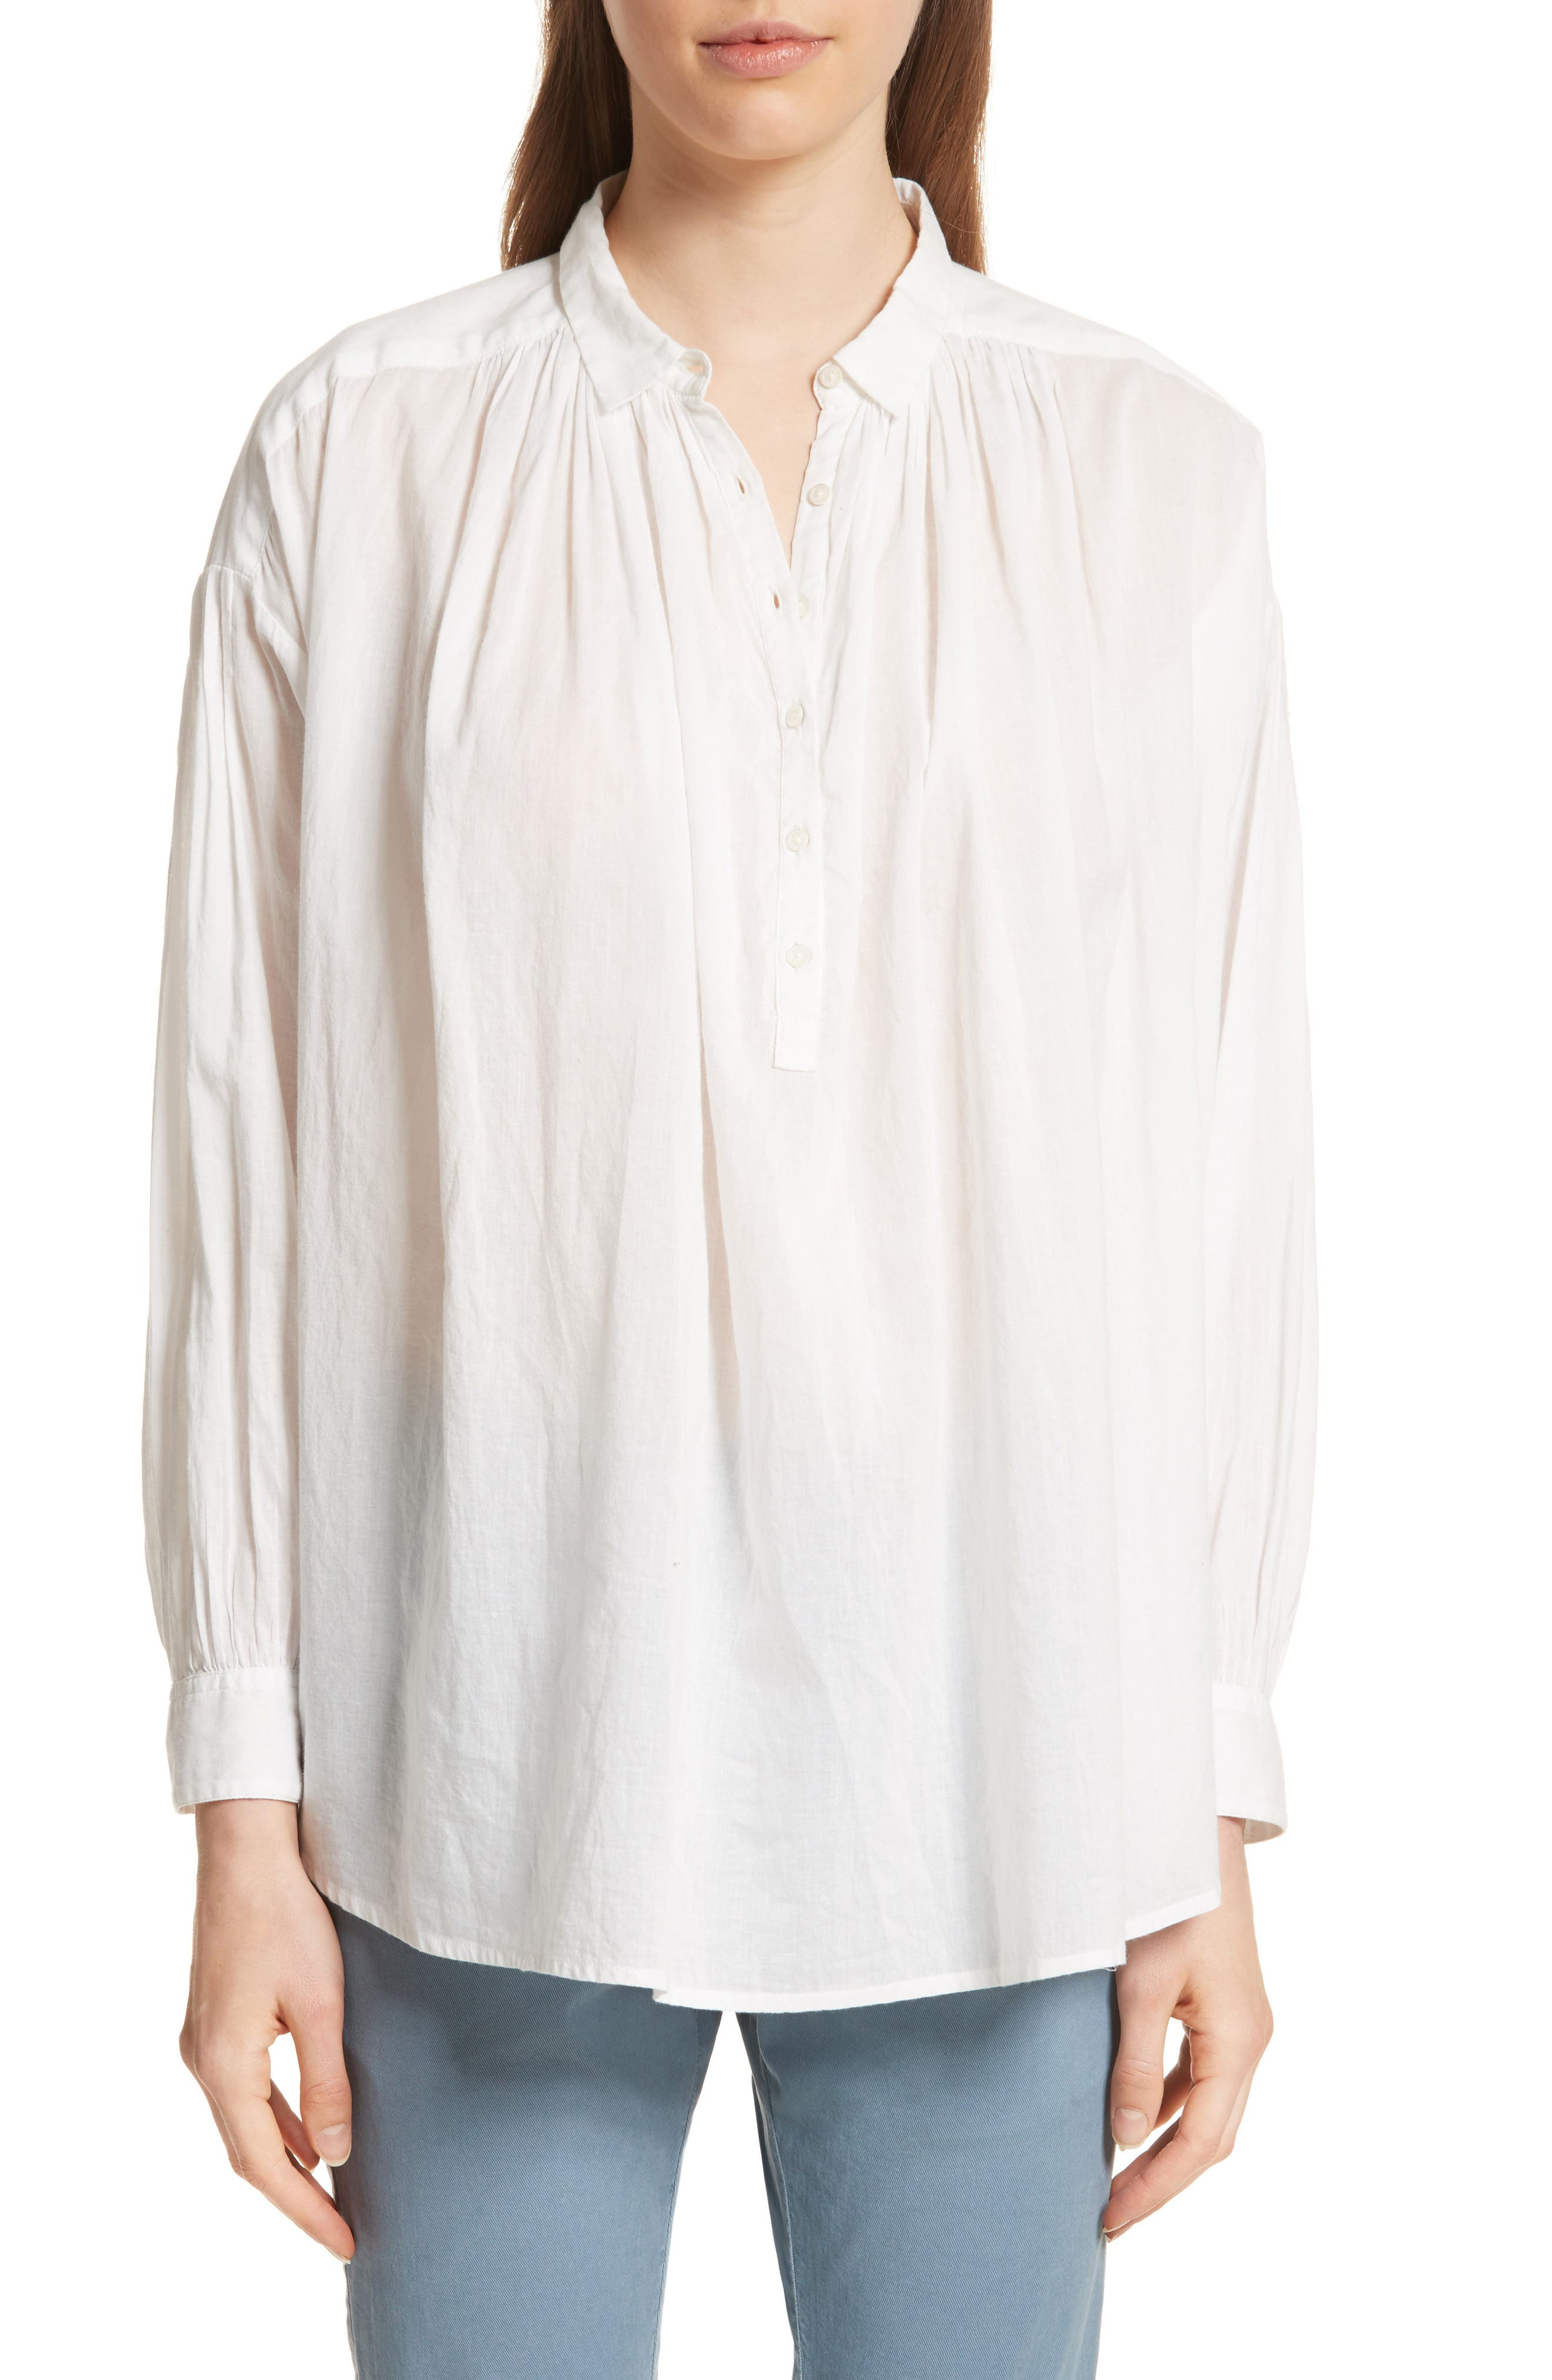 Miles Gathered Yoke Blouse,                             Main thumbnail 1, color,                             902